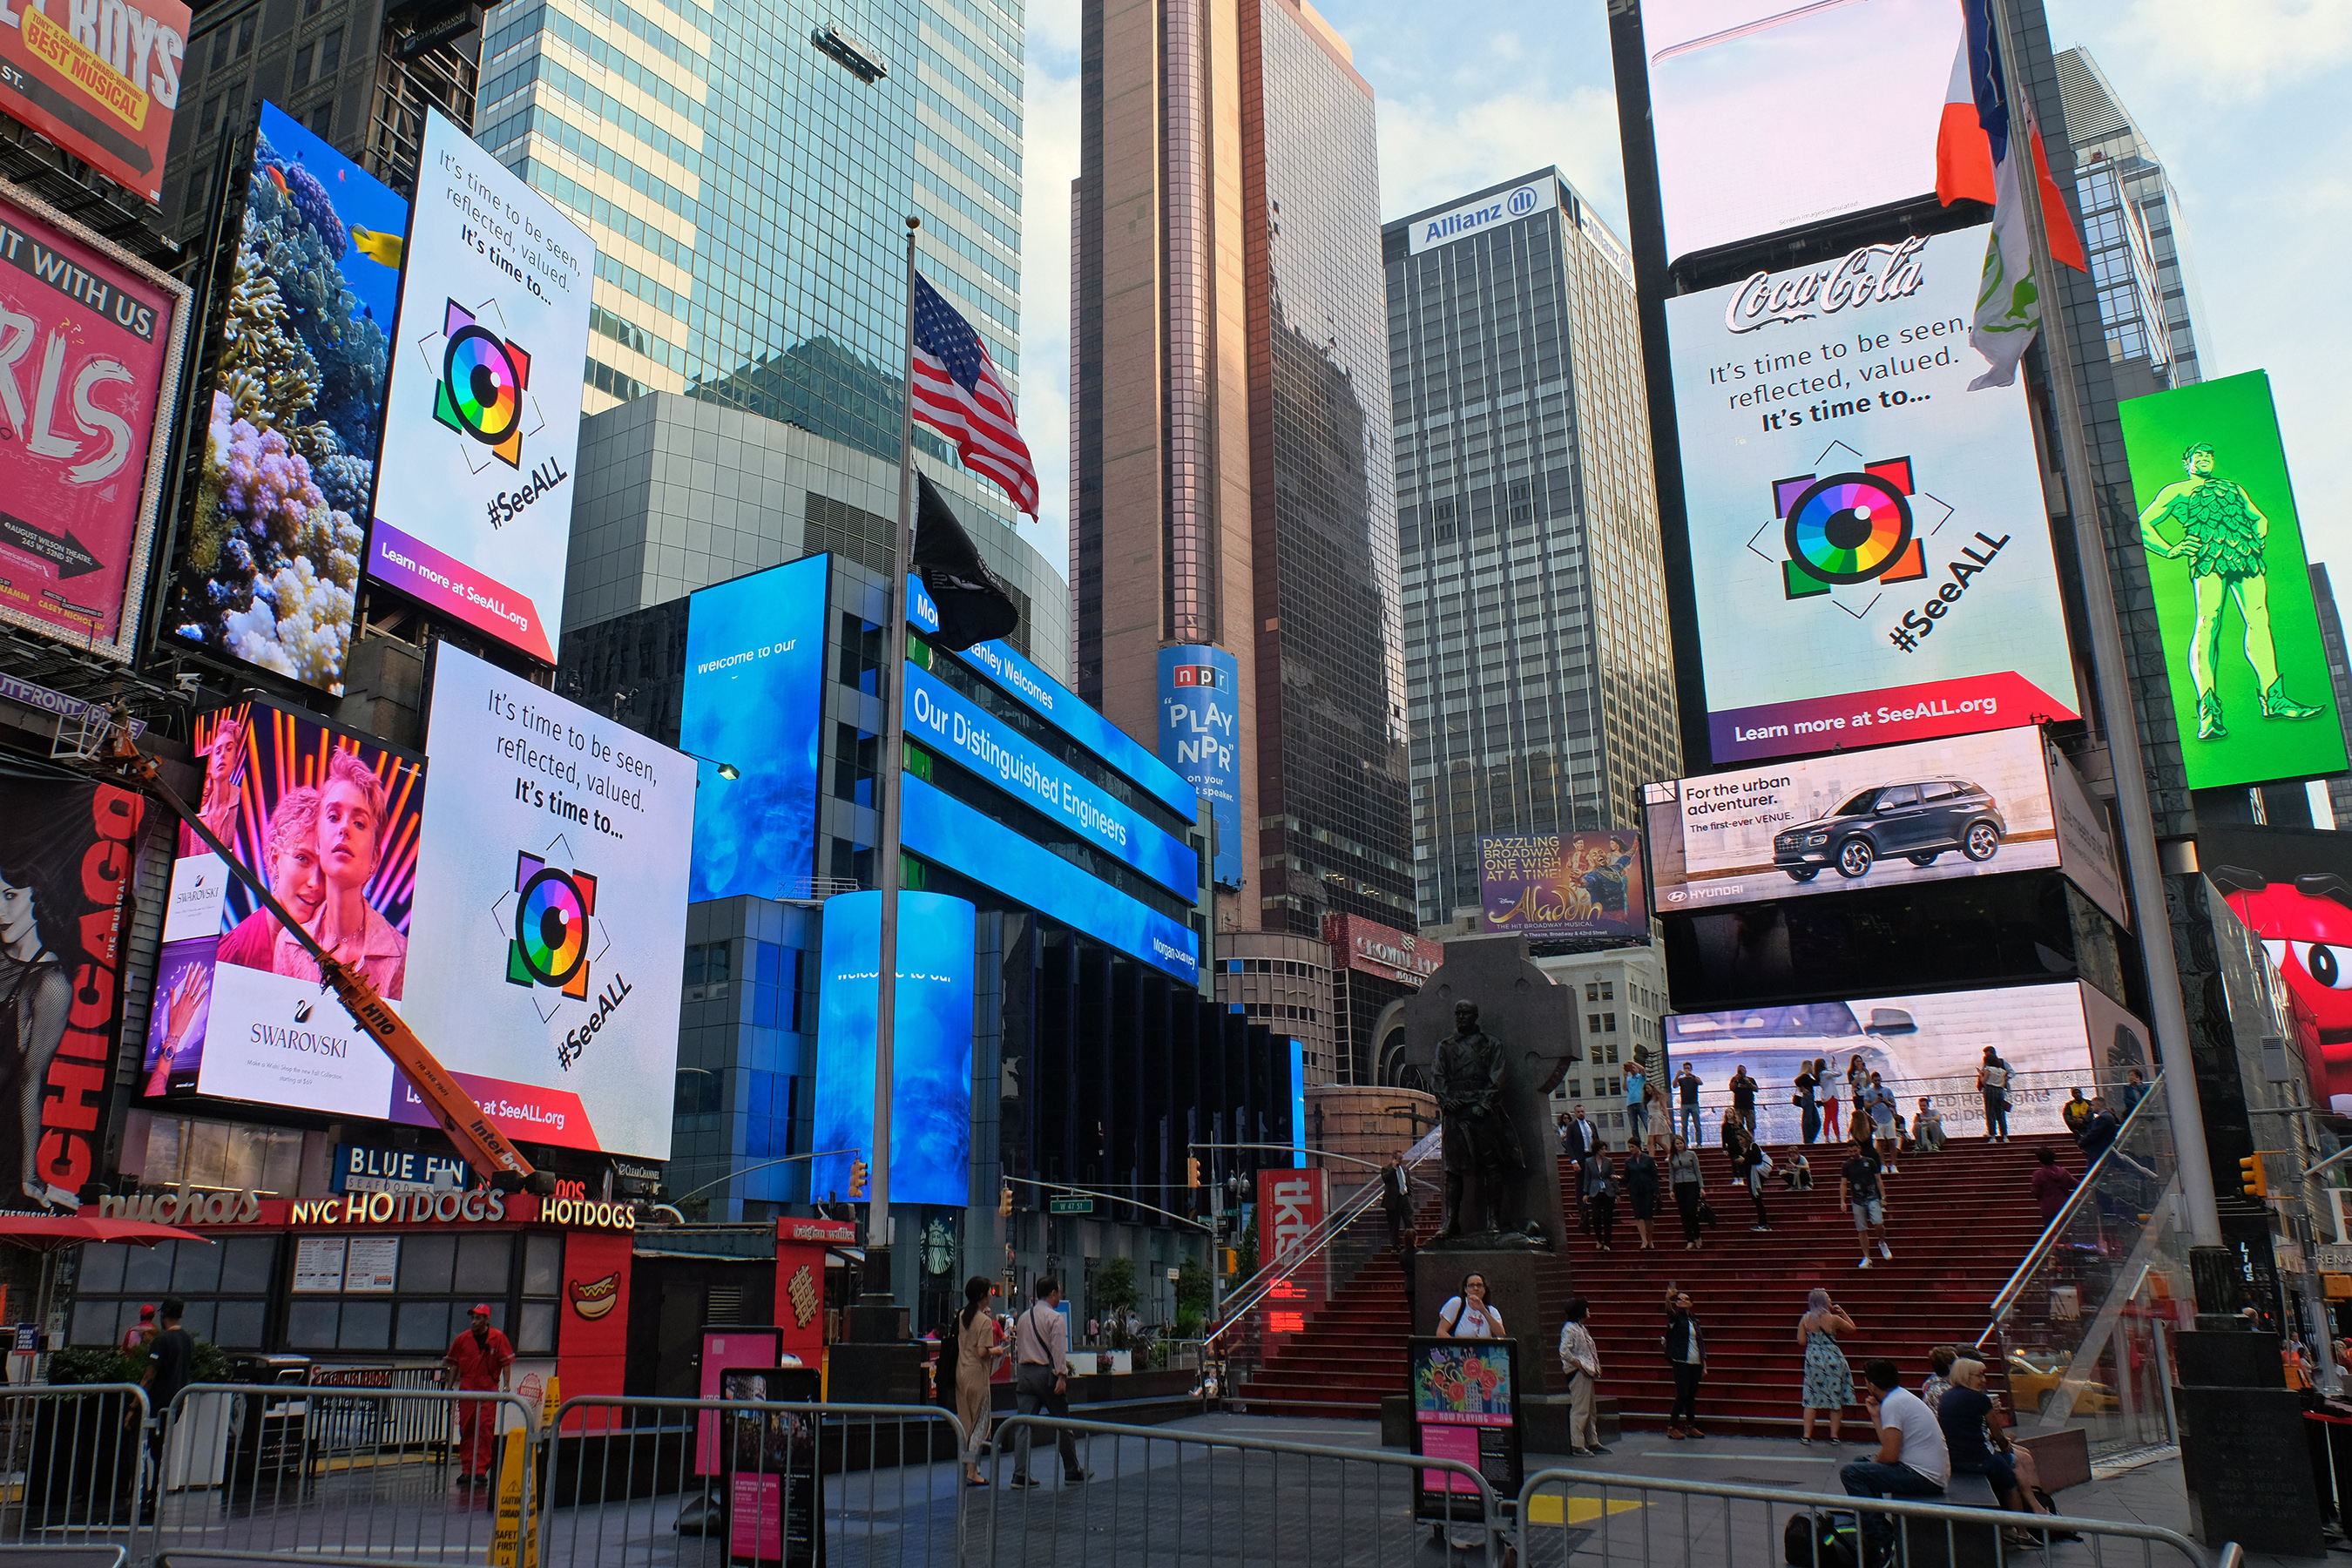 The Association of National Advertisers' (ANA) Alliance for Inclusive and MultiCultural Marketing (AIMM) launches #SeeALL campaign promoting greater diversity and cultural inclusion in brand advertising with a billboard takeover in NYC's Times Square on Monday, Sept. 23, 2019. Photo Credit: AP Images for Alliance for Inclusive and Multicultural Marketing (AIMM)